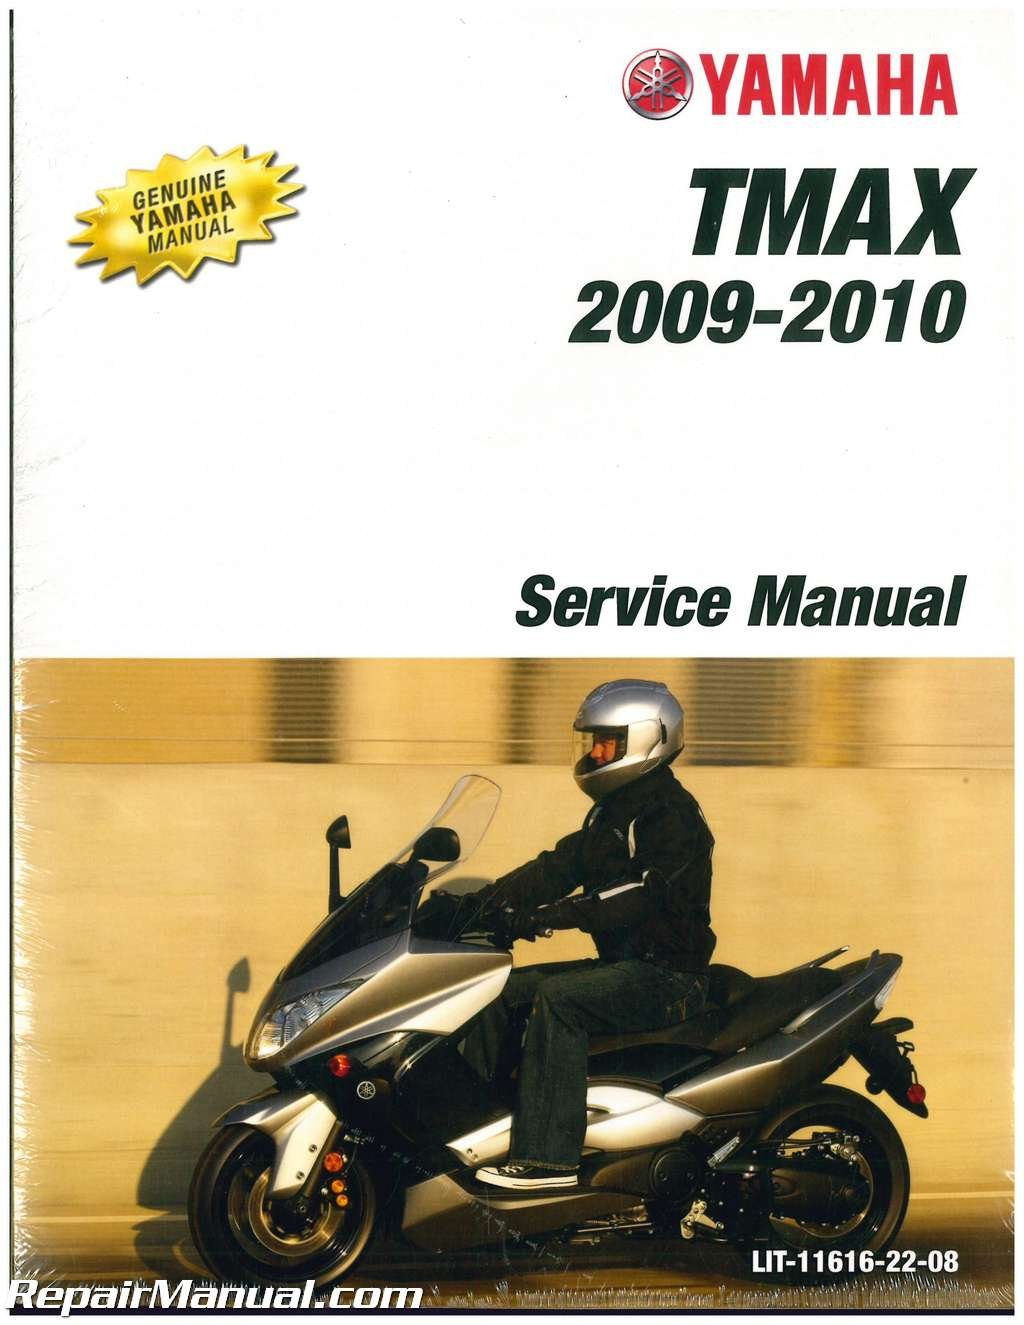 Lit 11616 22 08 2009 2011 Yamaha Xp500 Tmax Scooter Service Manual By Author Amazon Com Books